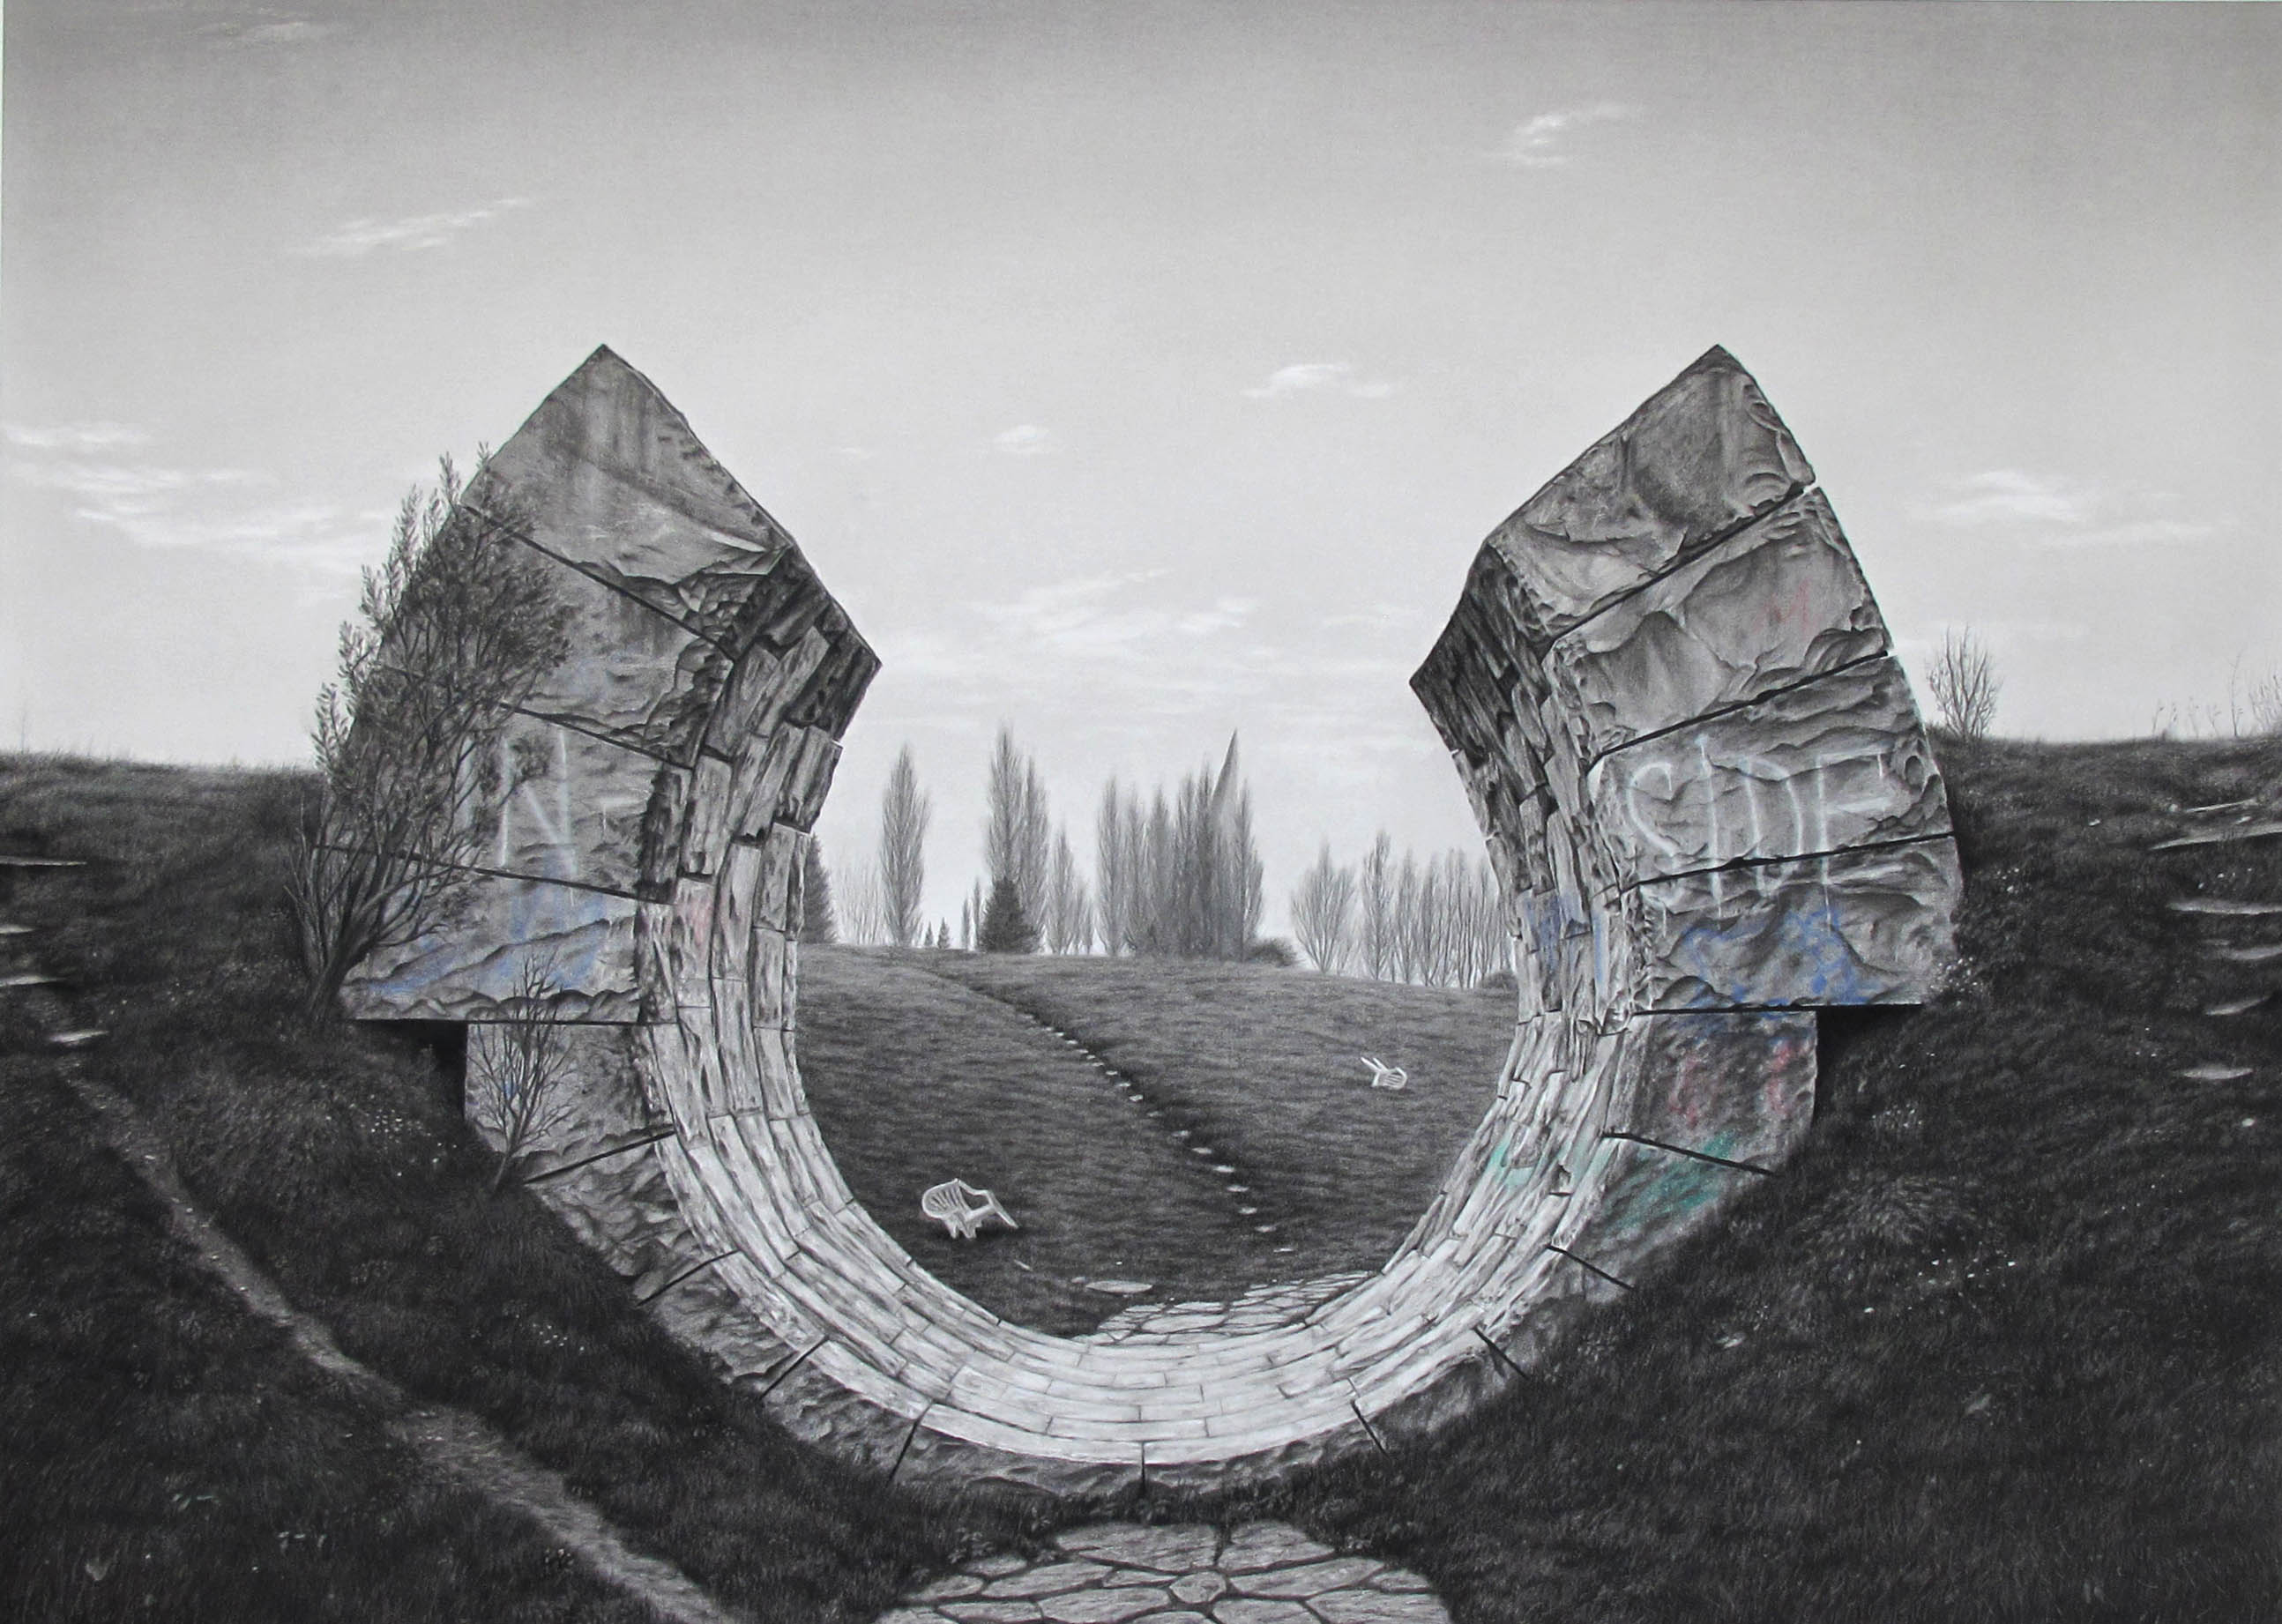 Tommy Sveningsson, Gates of Sun, 2016, charcoal, pastel on paper, 110 x 145 cm